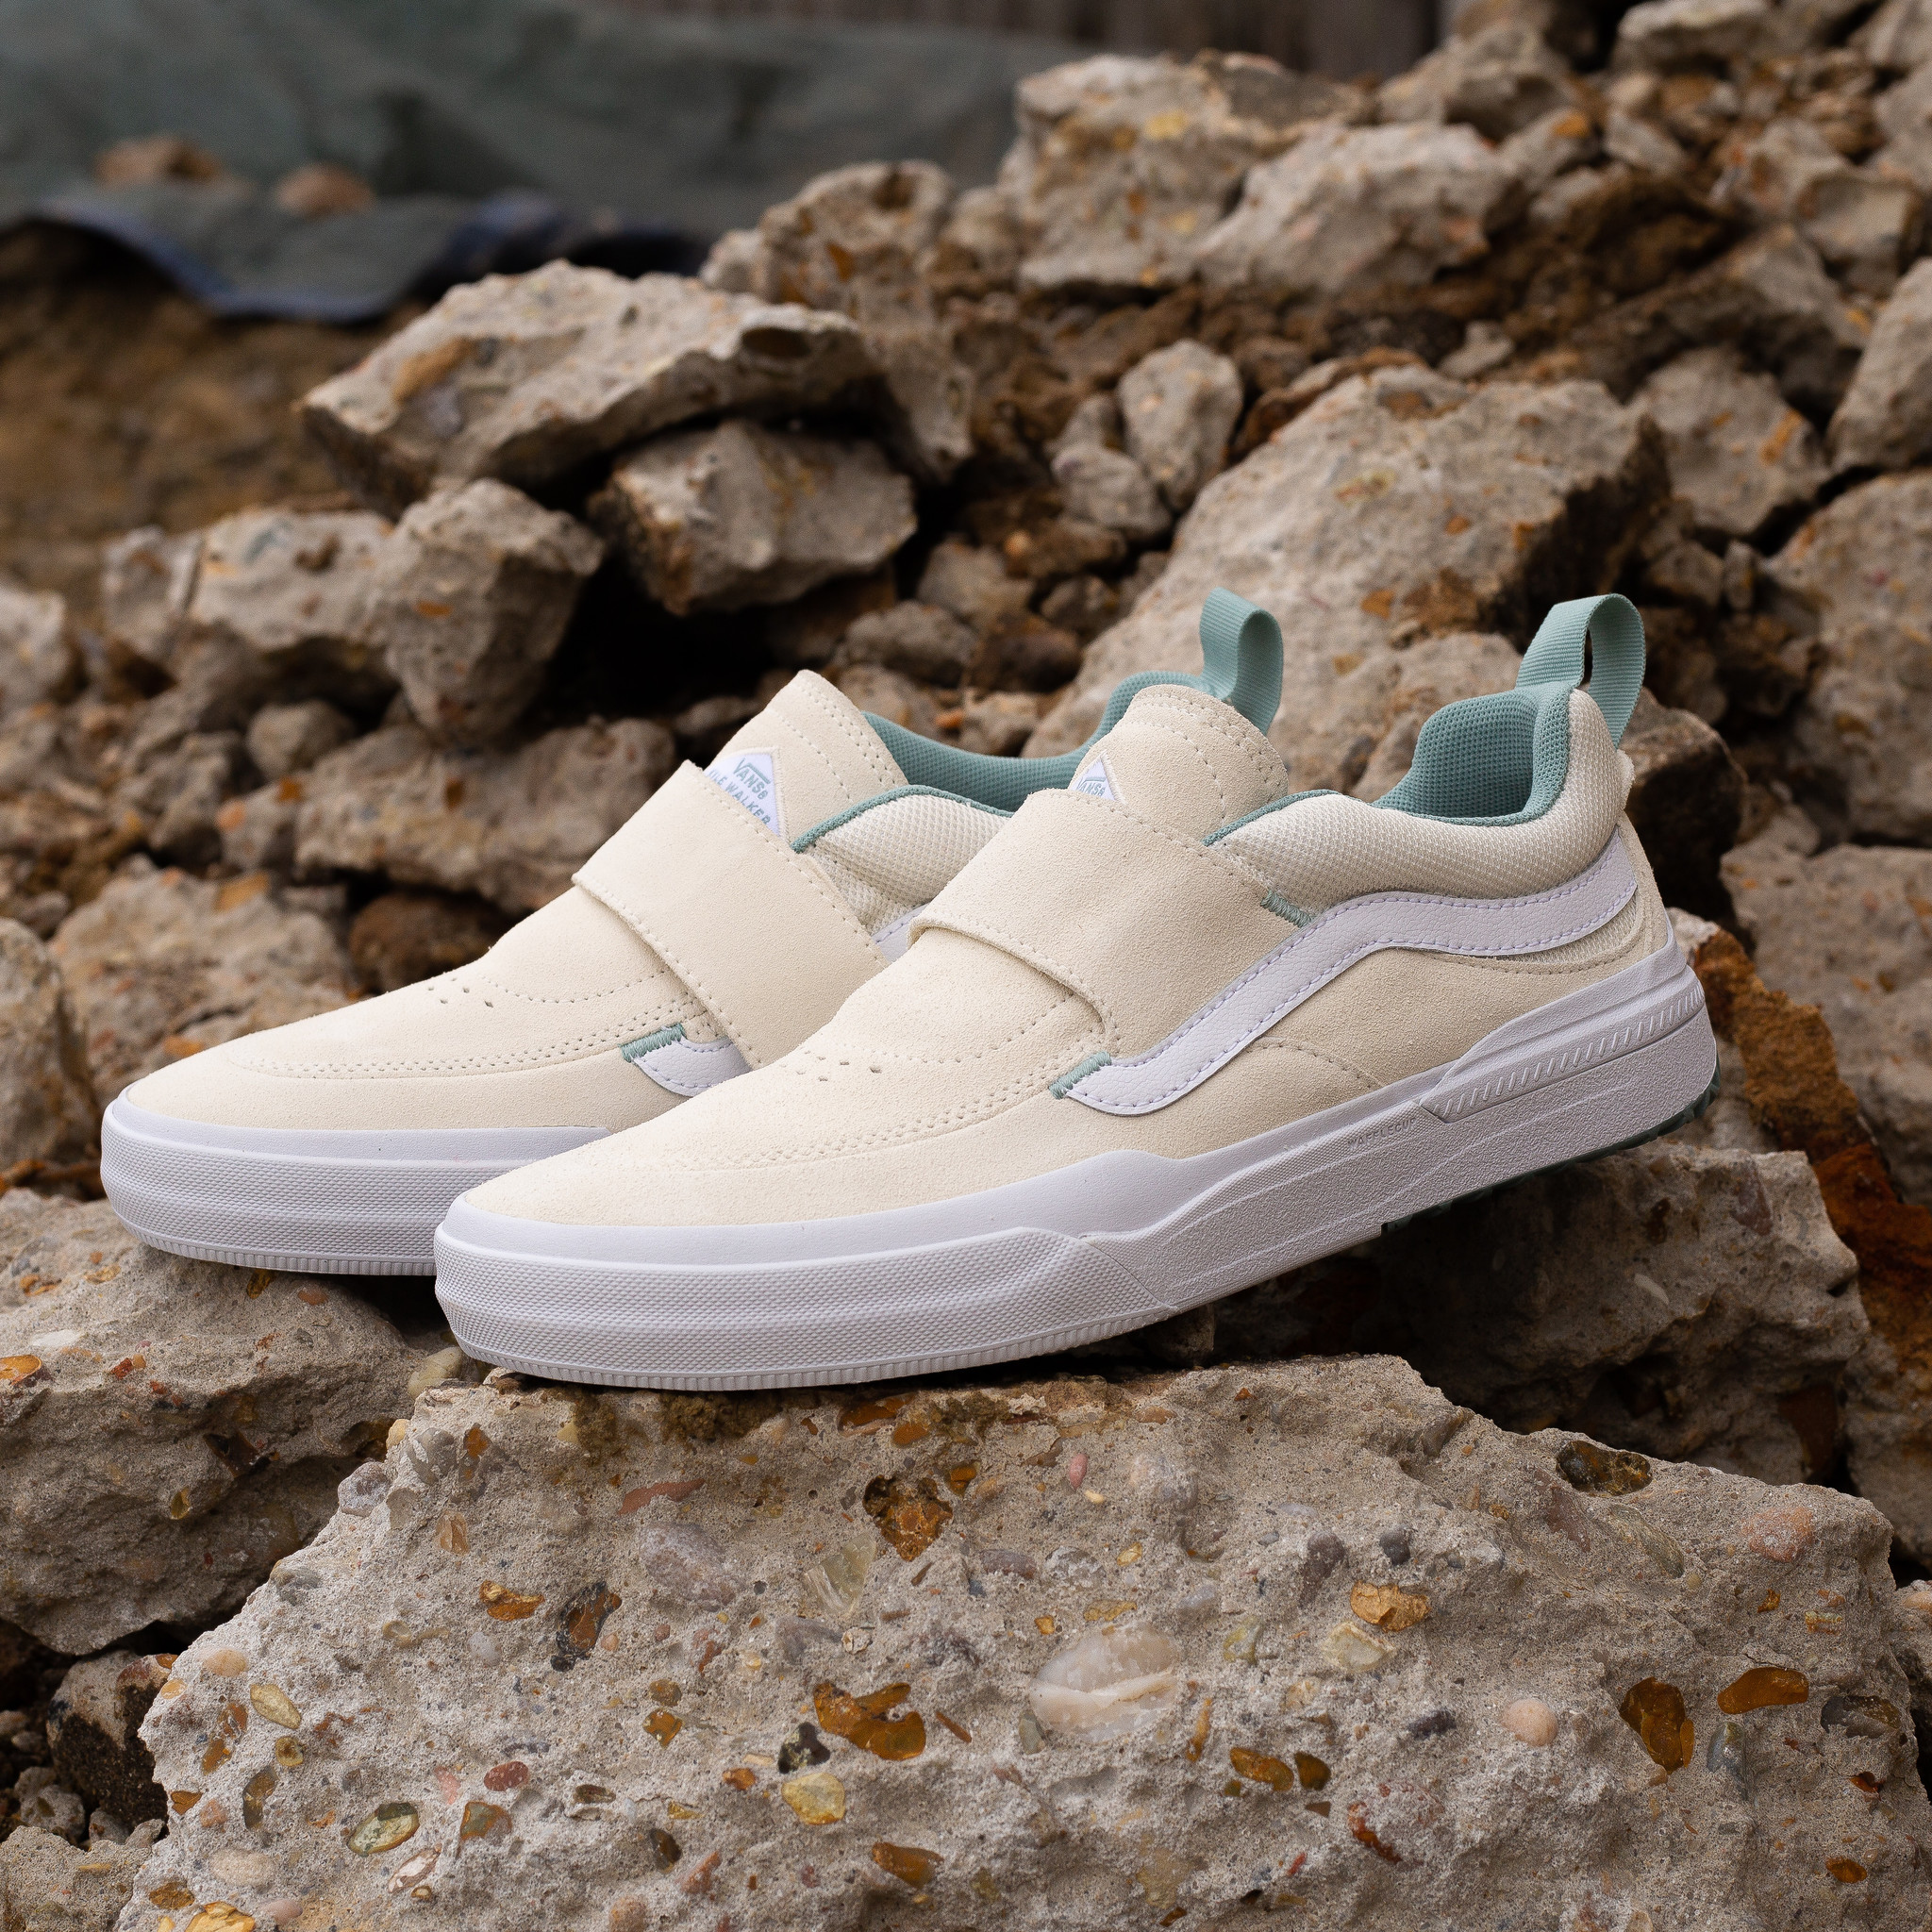 Vans Kyle Walker Pro 2 Antique White